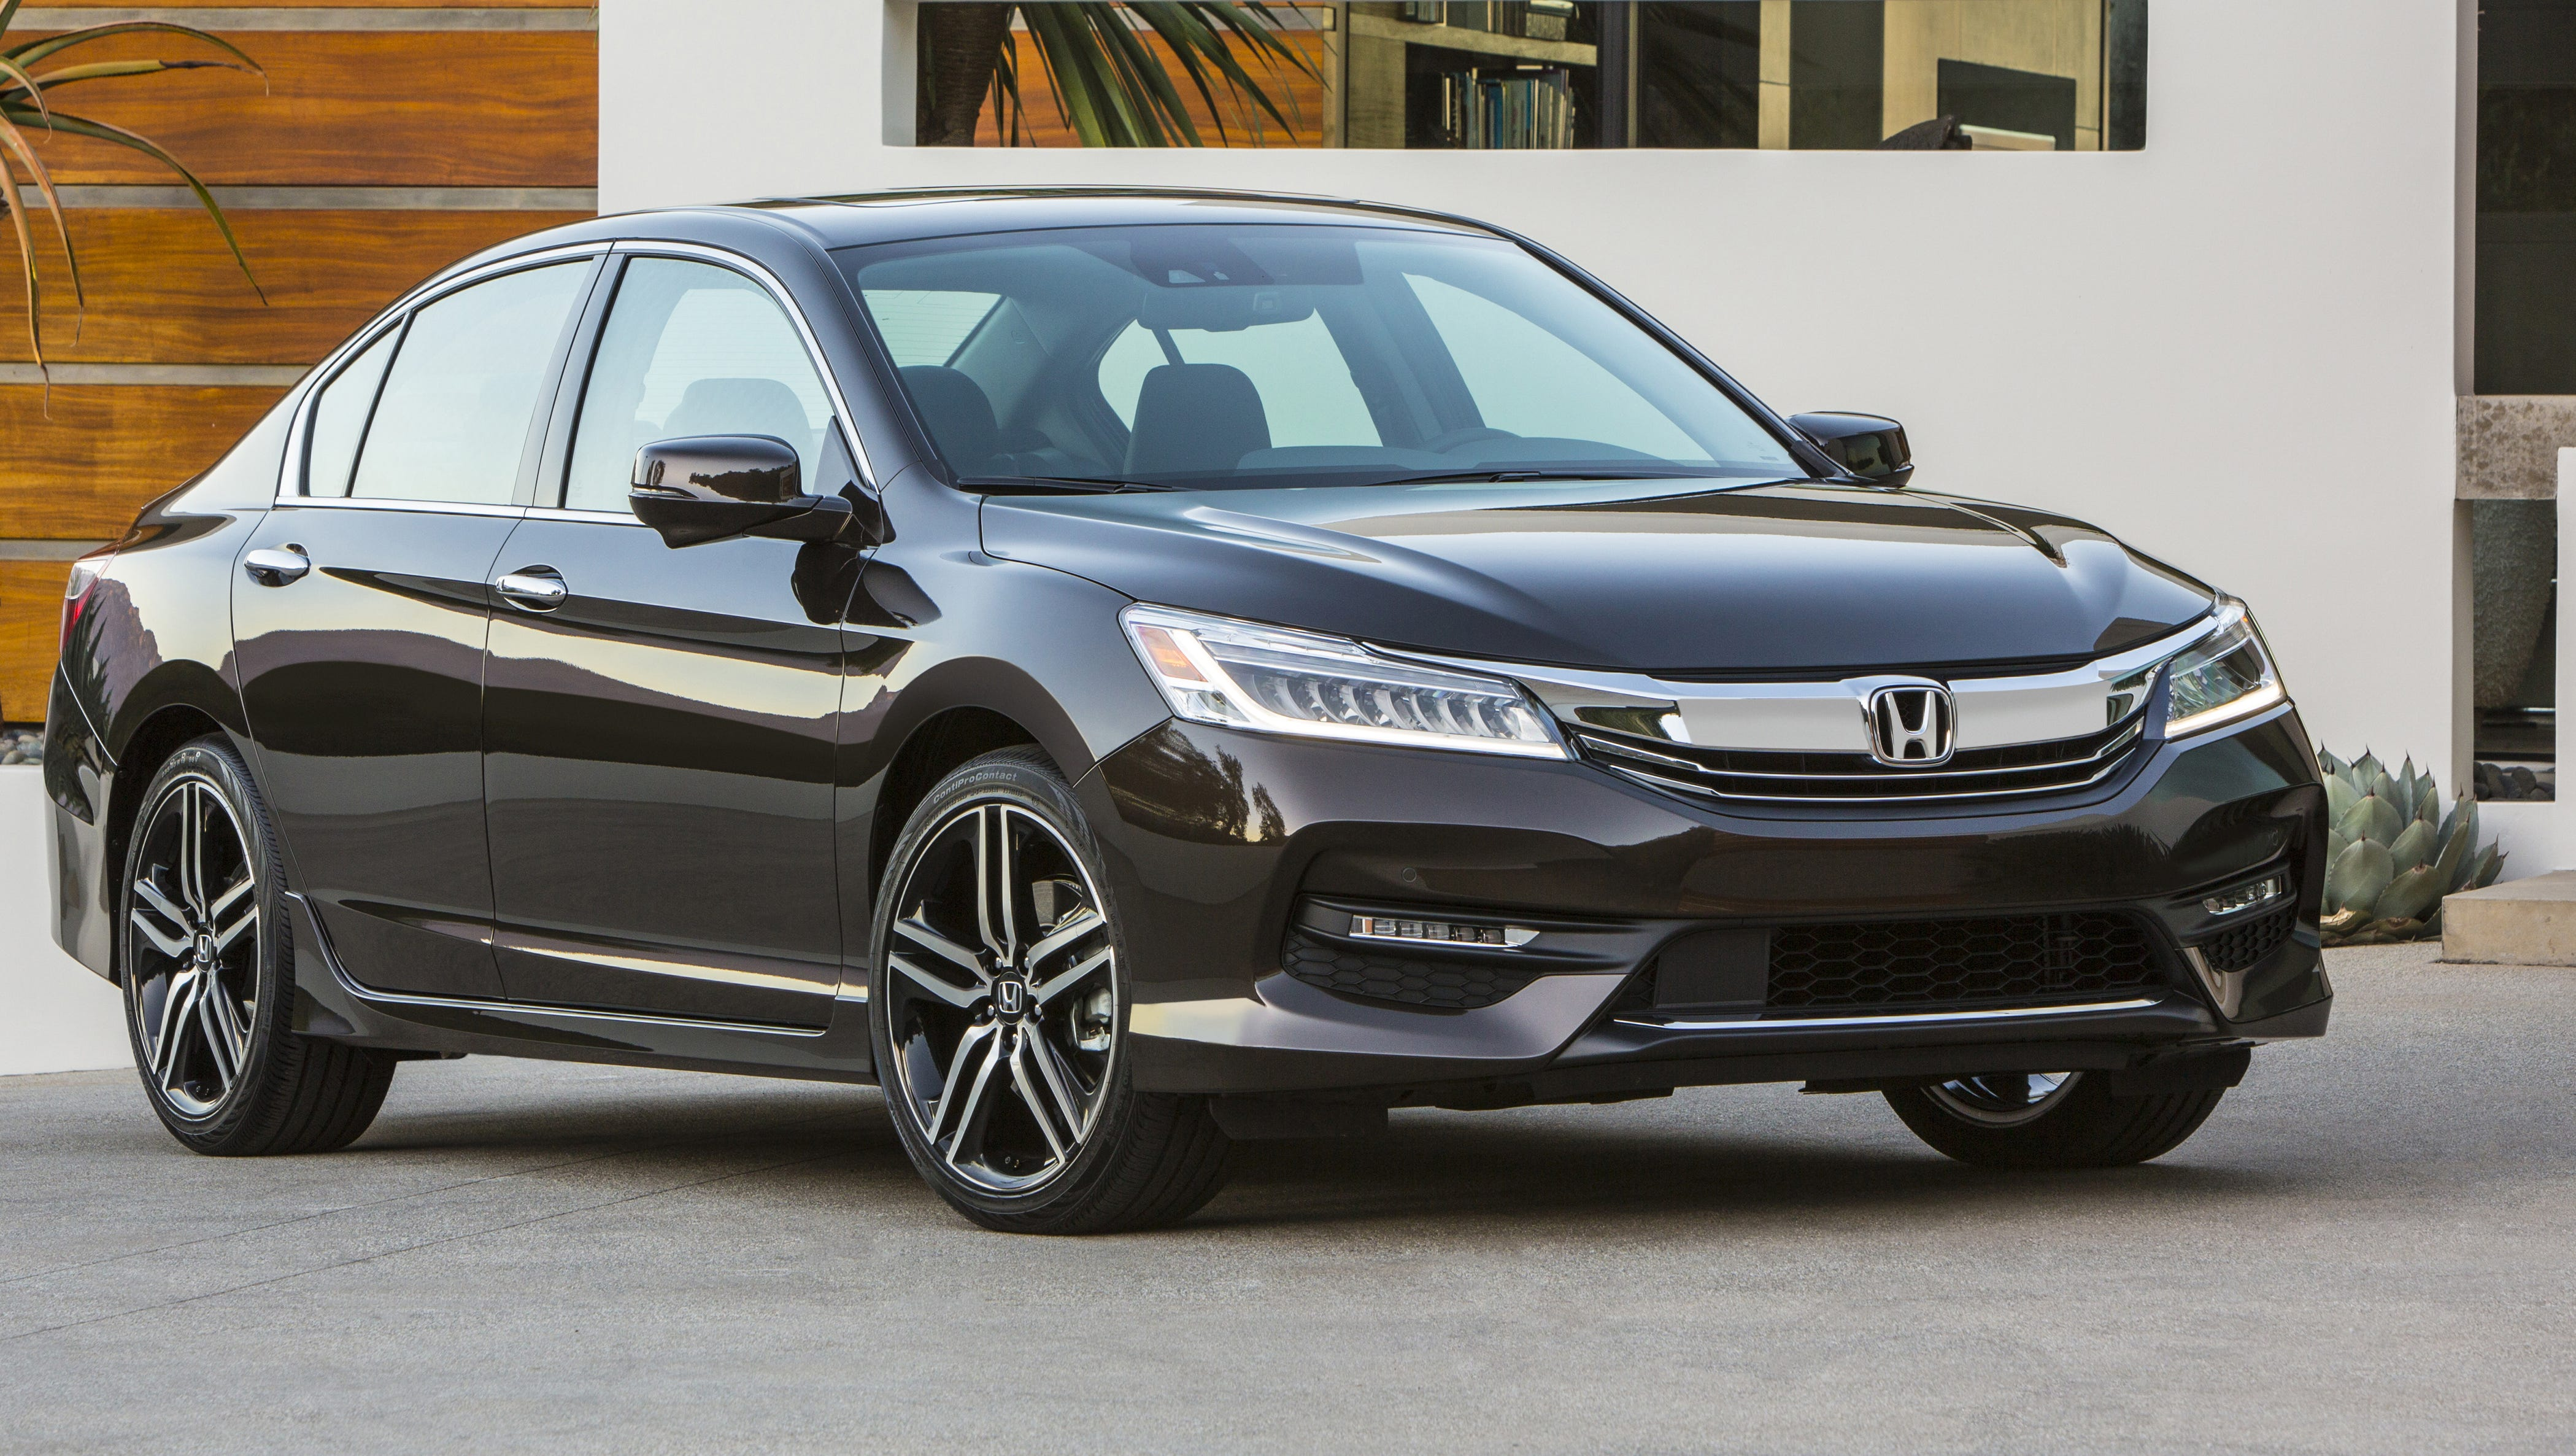 Honda Accord Recall 15M Called Back Over Potential Engine Fires